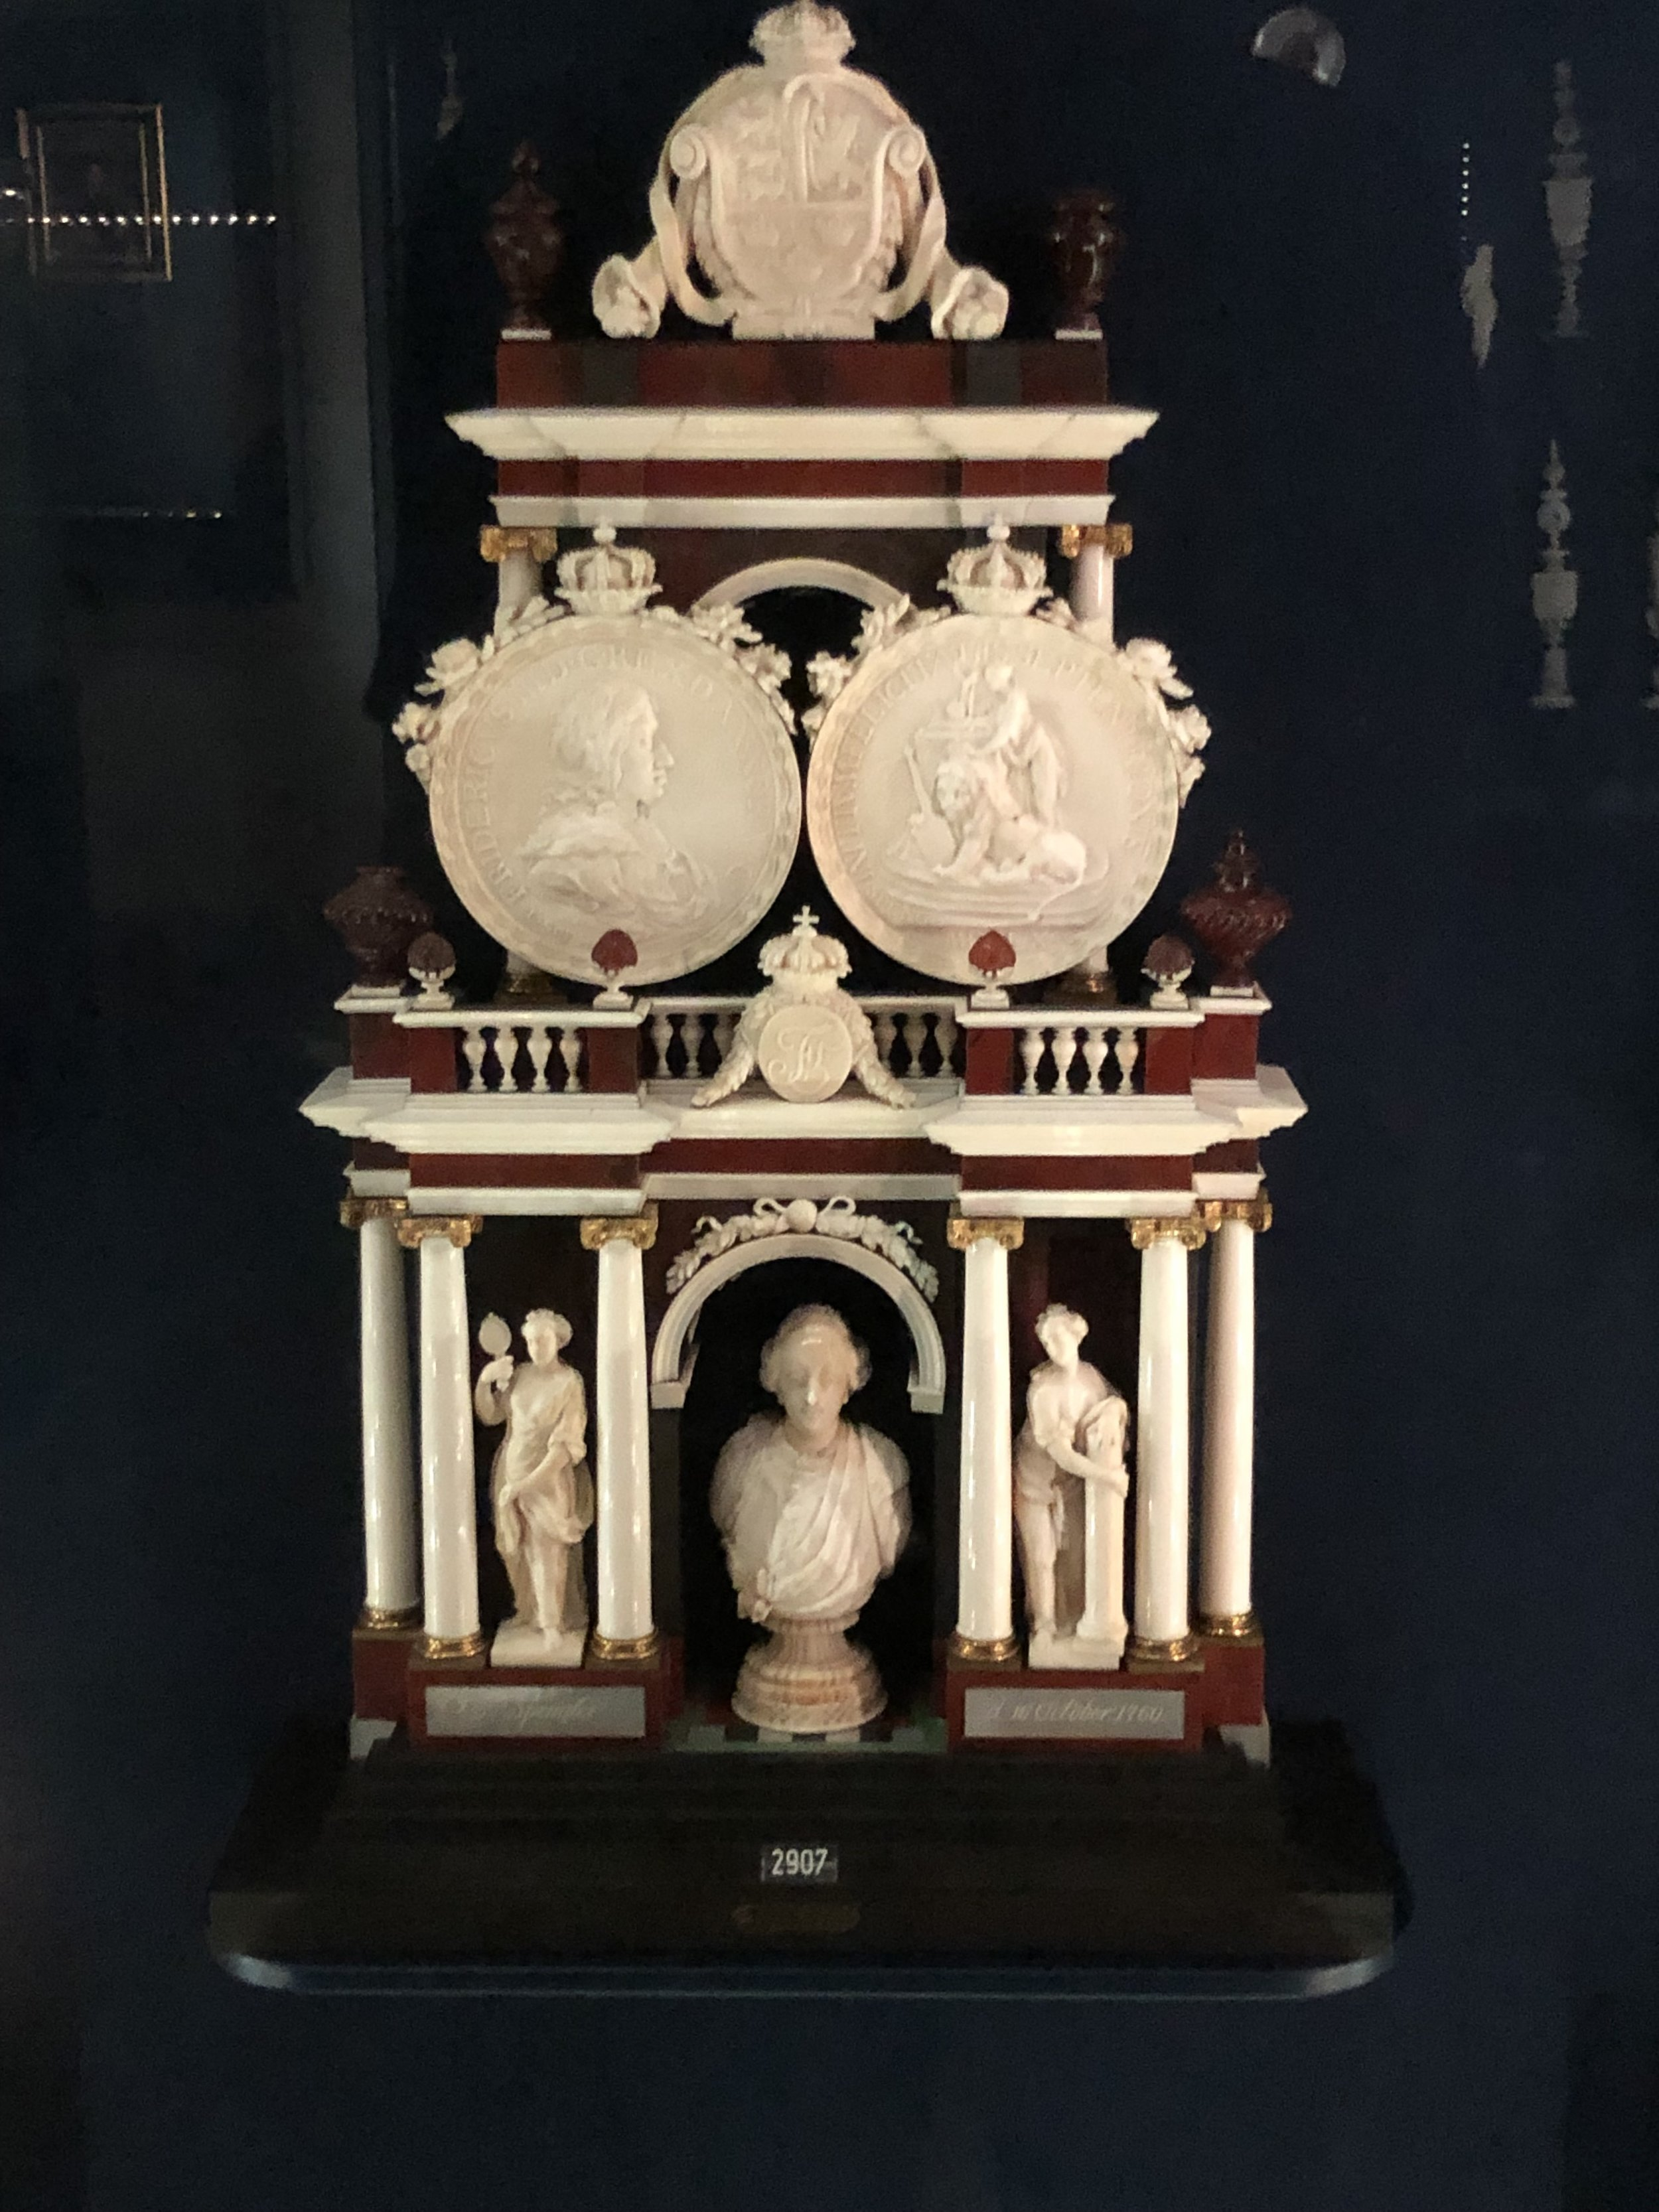 There were many pieces like this one beautifully carved in ivory.